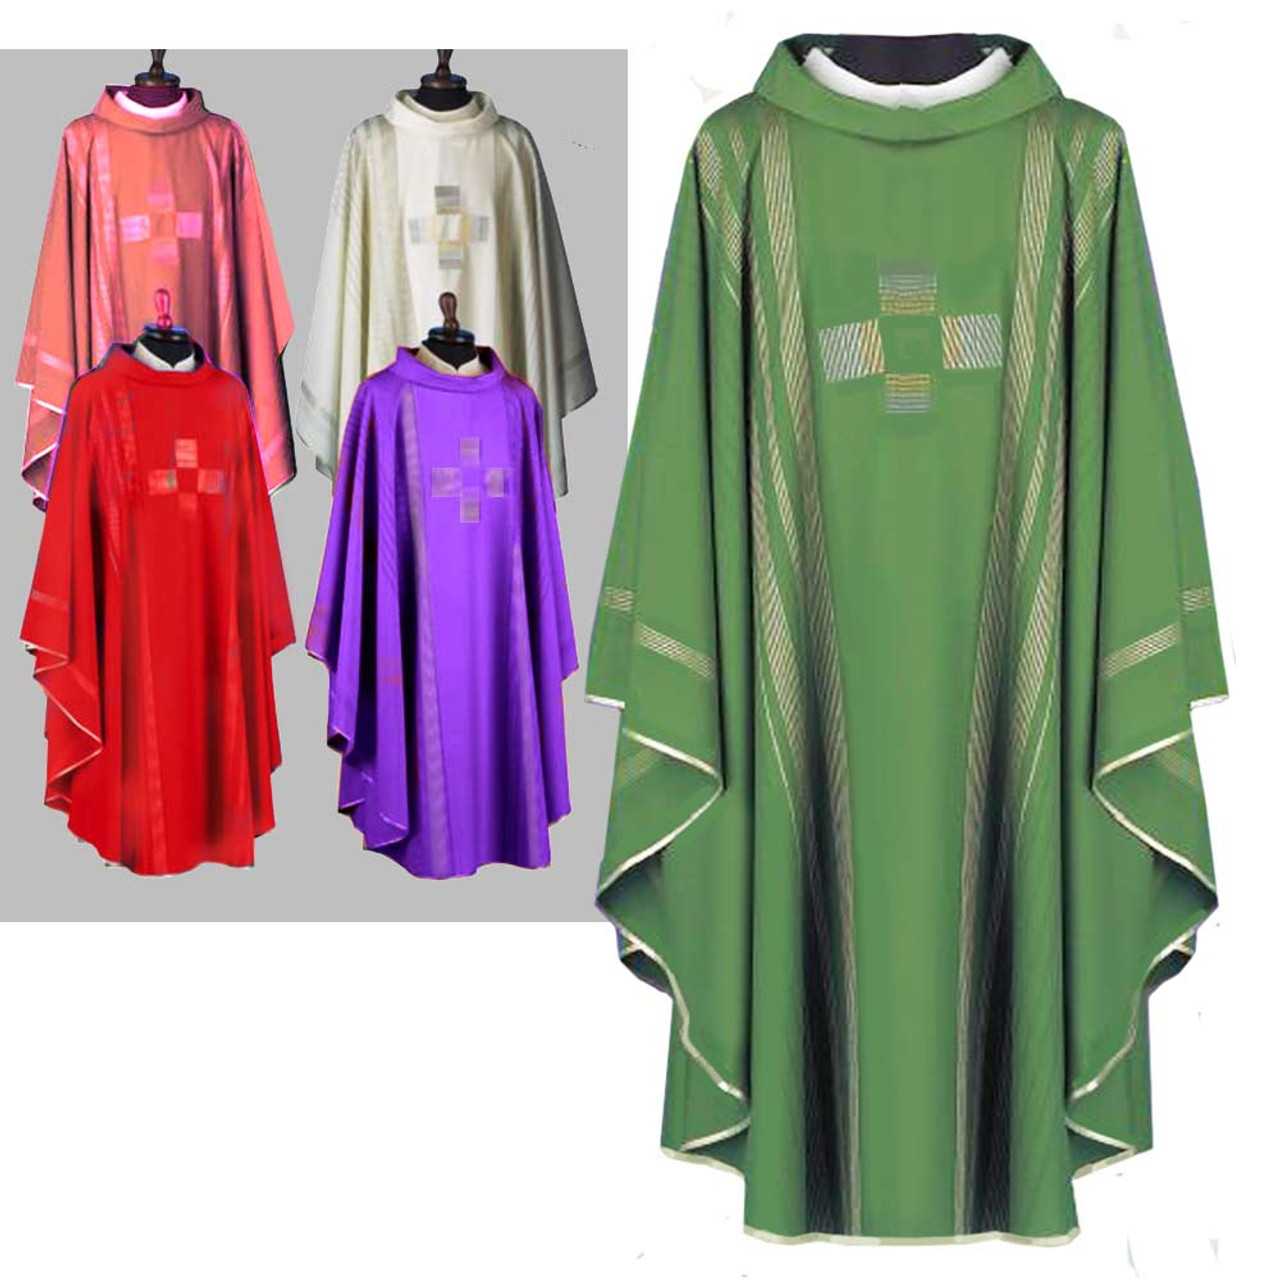 860 Green Chasuble in Linea from Solivari